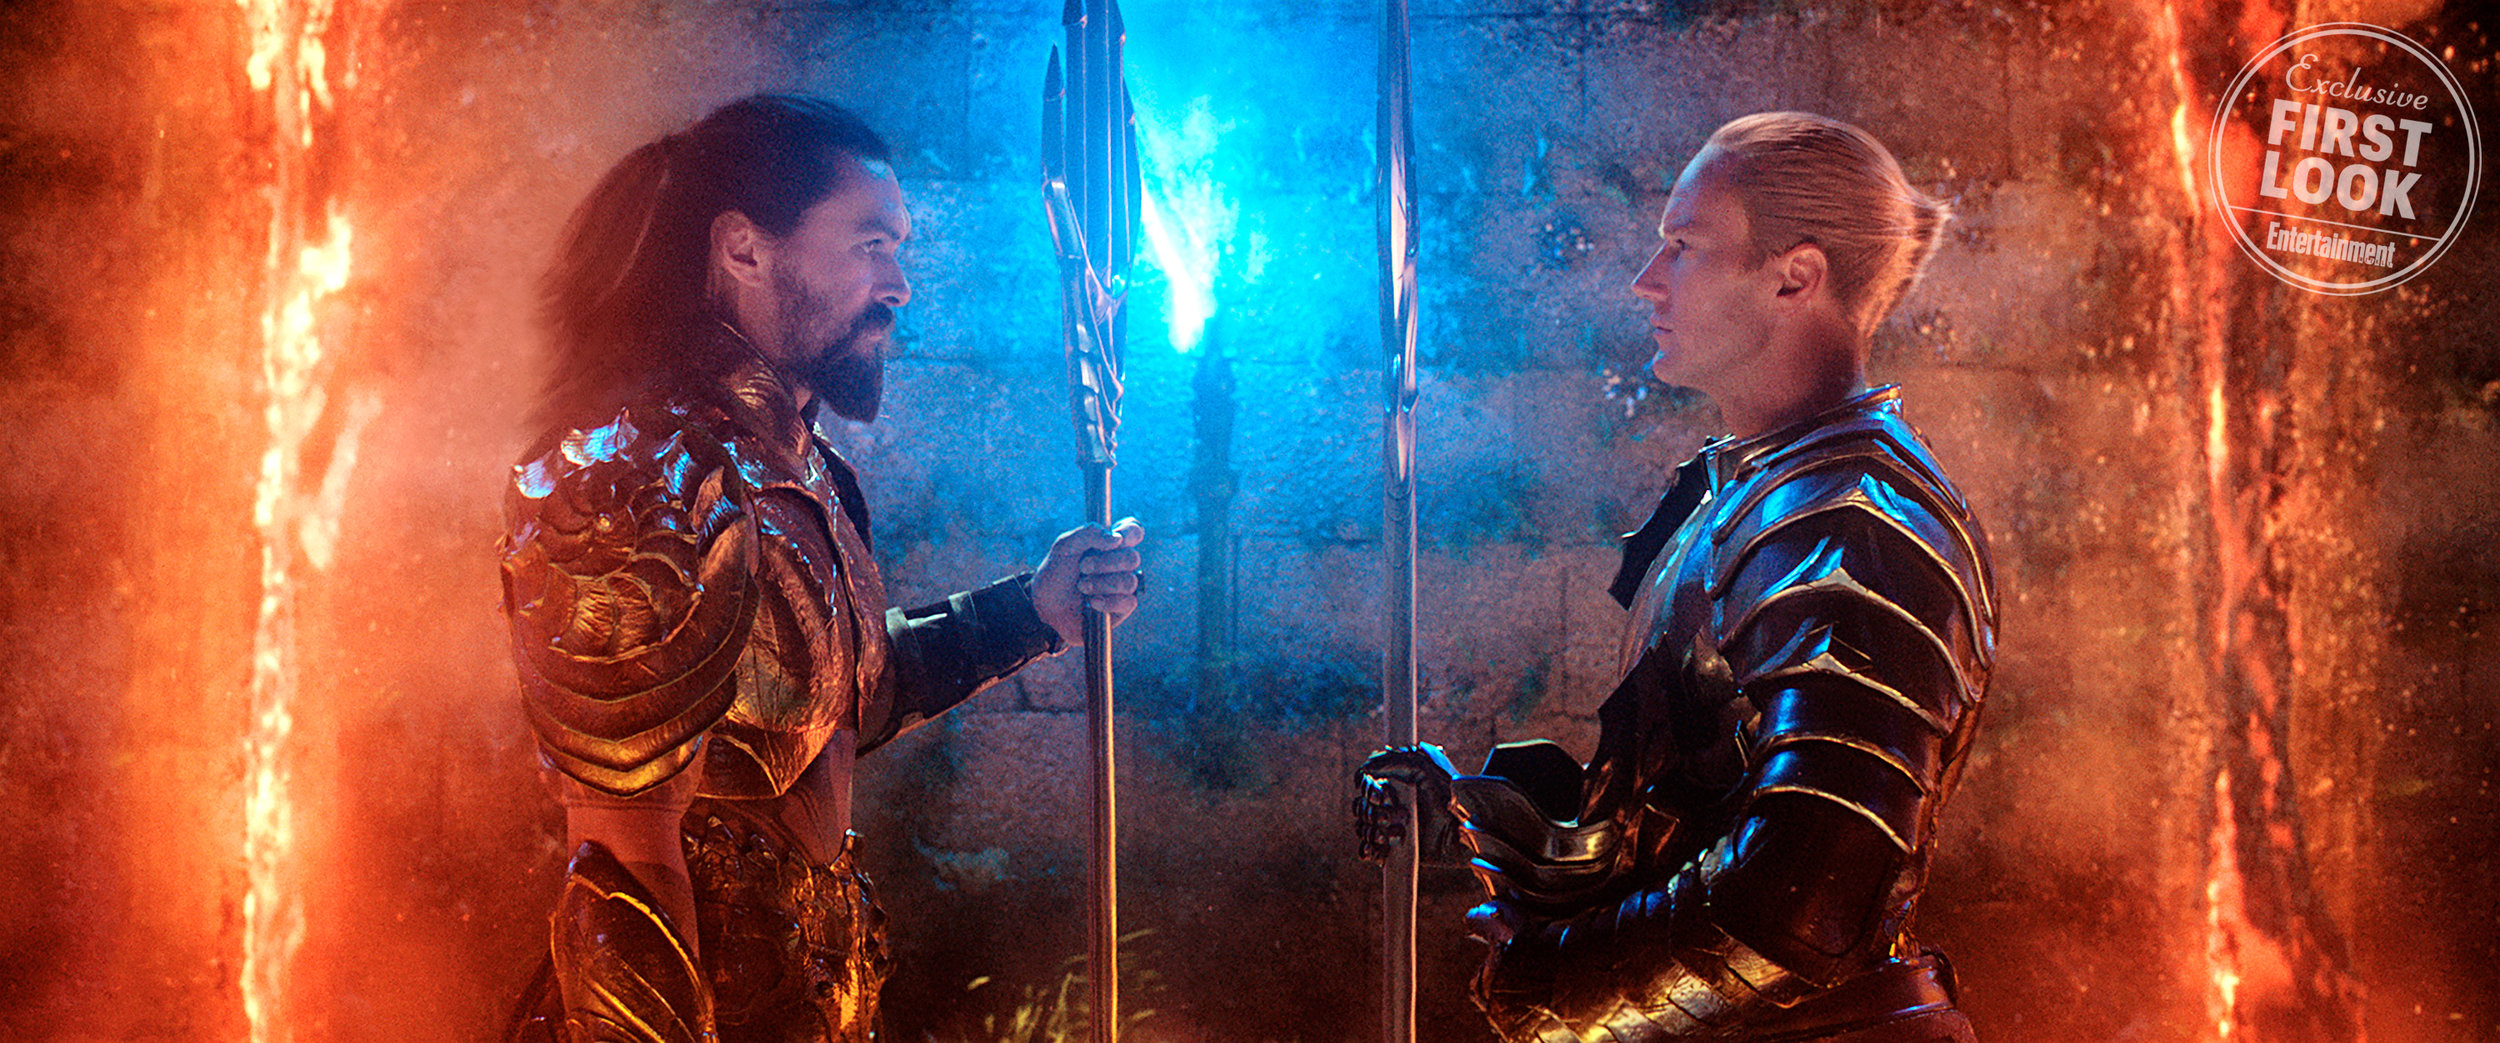 more-cool-new-aquaman-photos-show-patrick-wilsons-orm-come-face-to-face-with-aquaman2